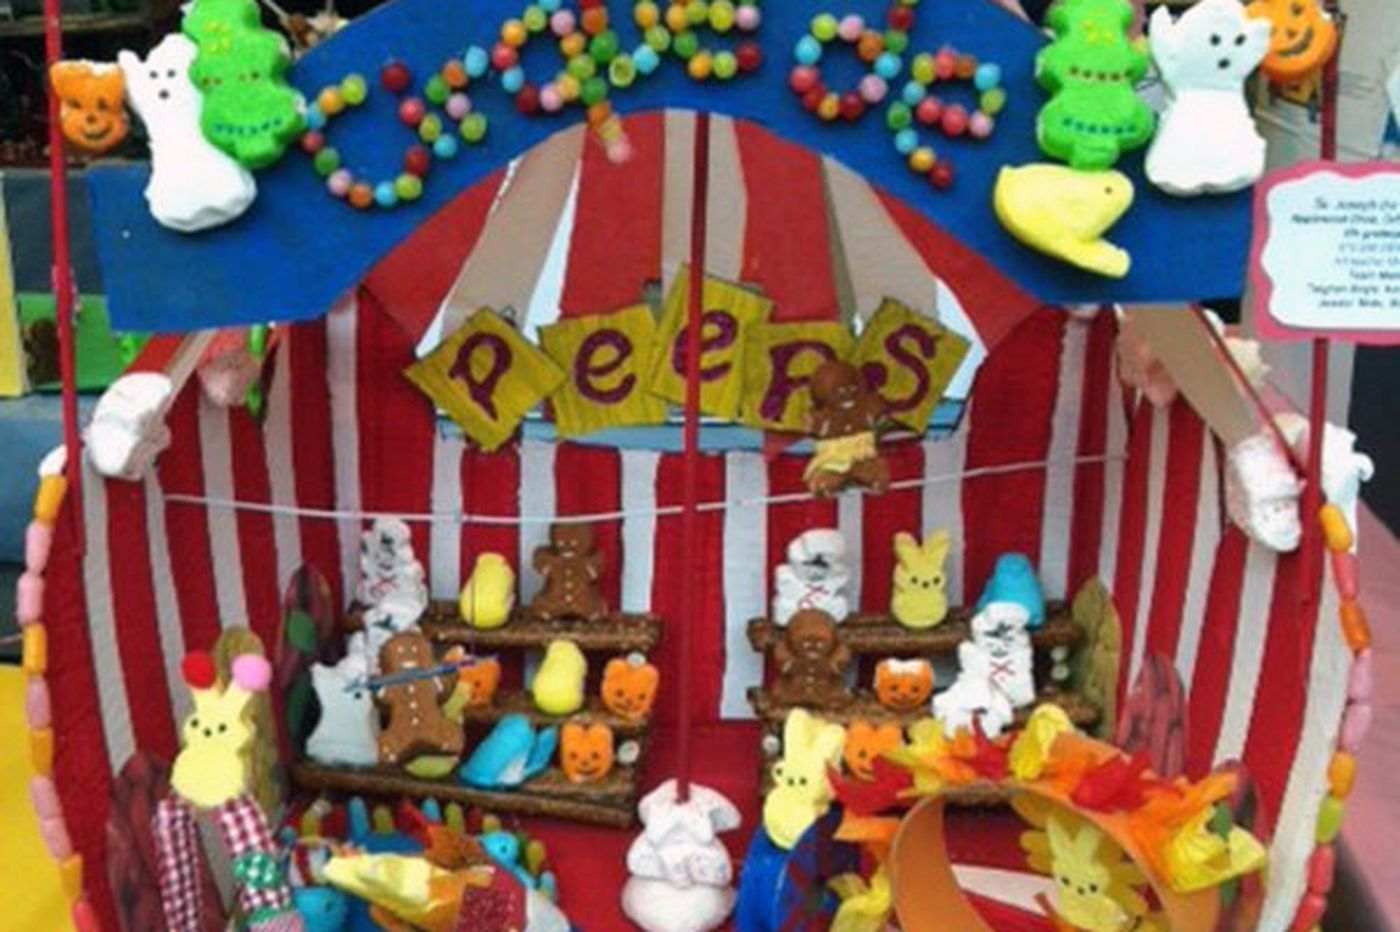 Peeps festival celebrates kitschy candy with Pa. roots